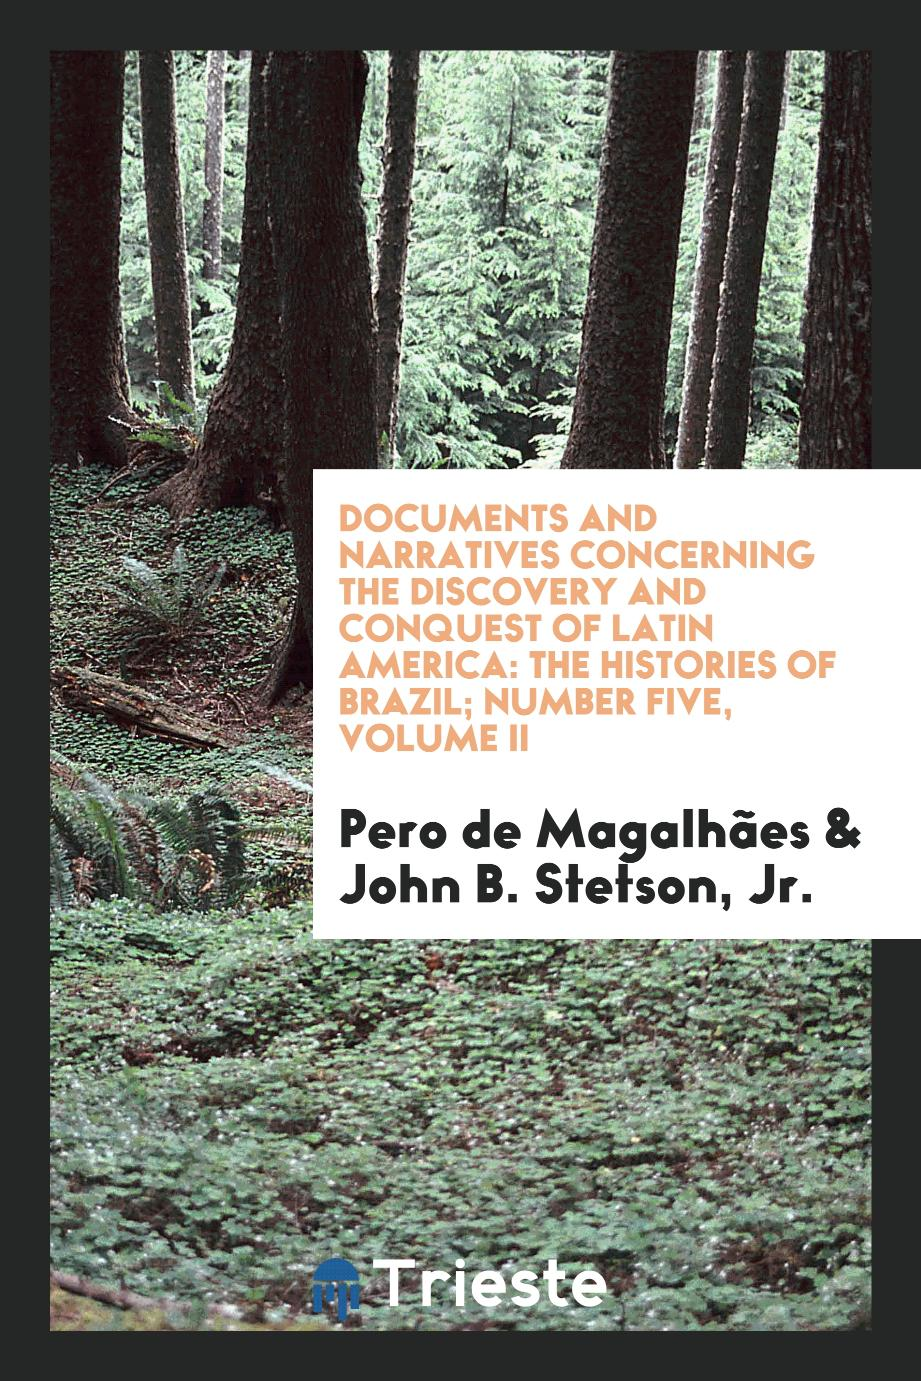 Documents and Narratives Concerning the Discovery and Conquest of Latin America: The Histories of Brazil; Number Five, Volume II